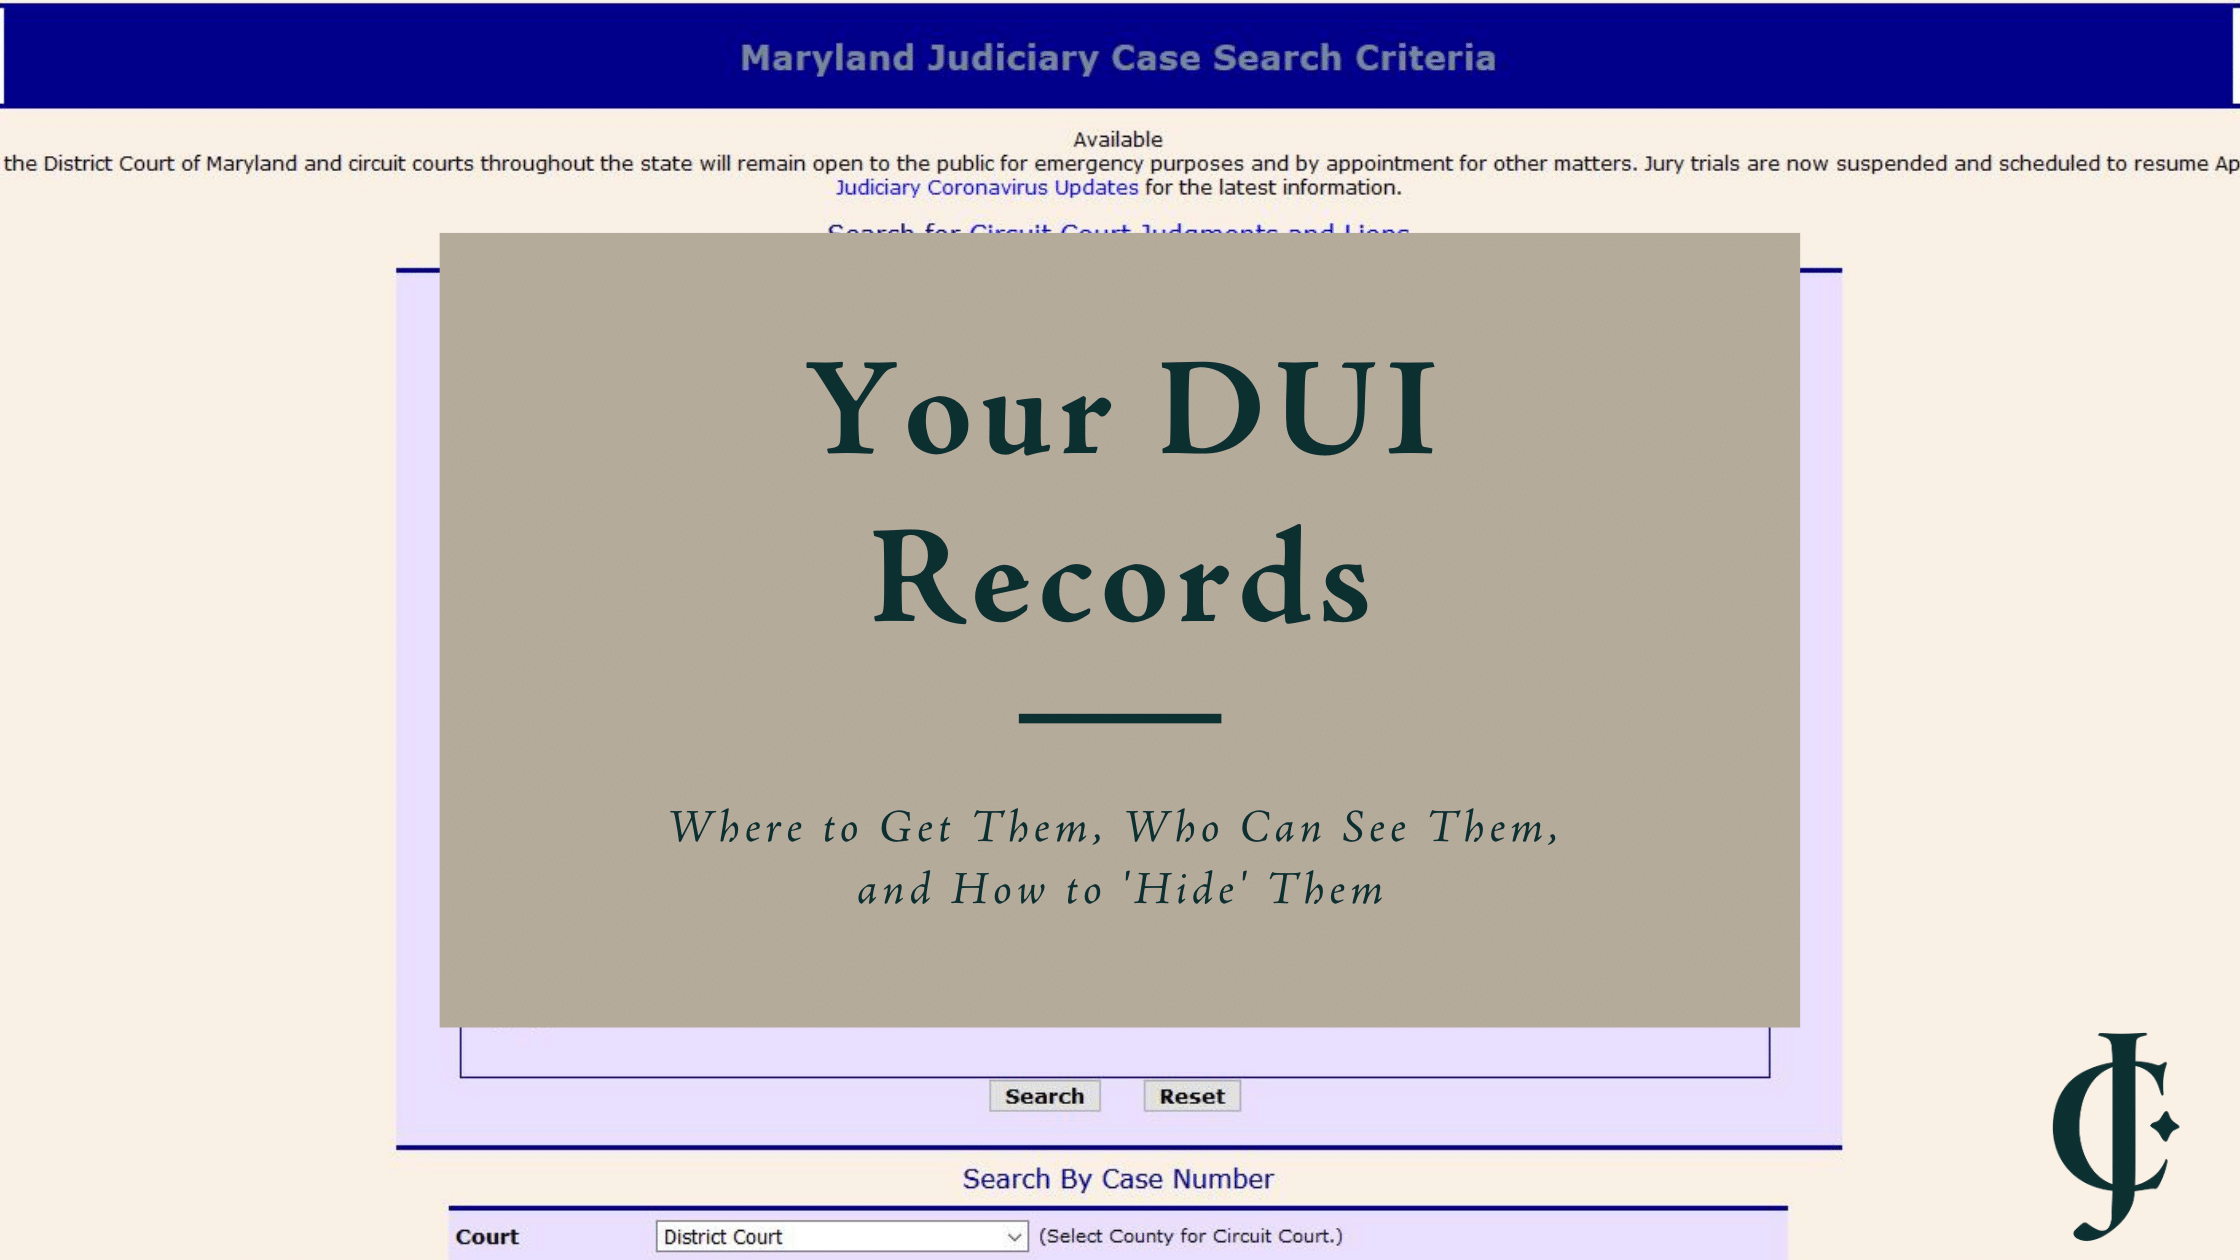 Where can you get your DUI records? At the Maryland case search, for starters -- but so can everyone else. Learn how to 'hide' DUIs through expungement.